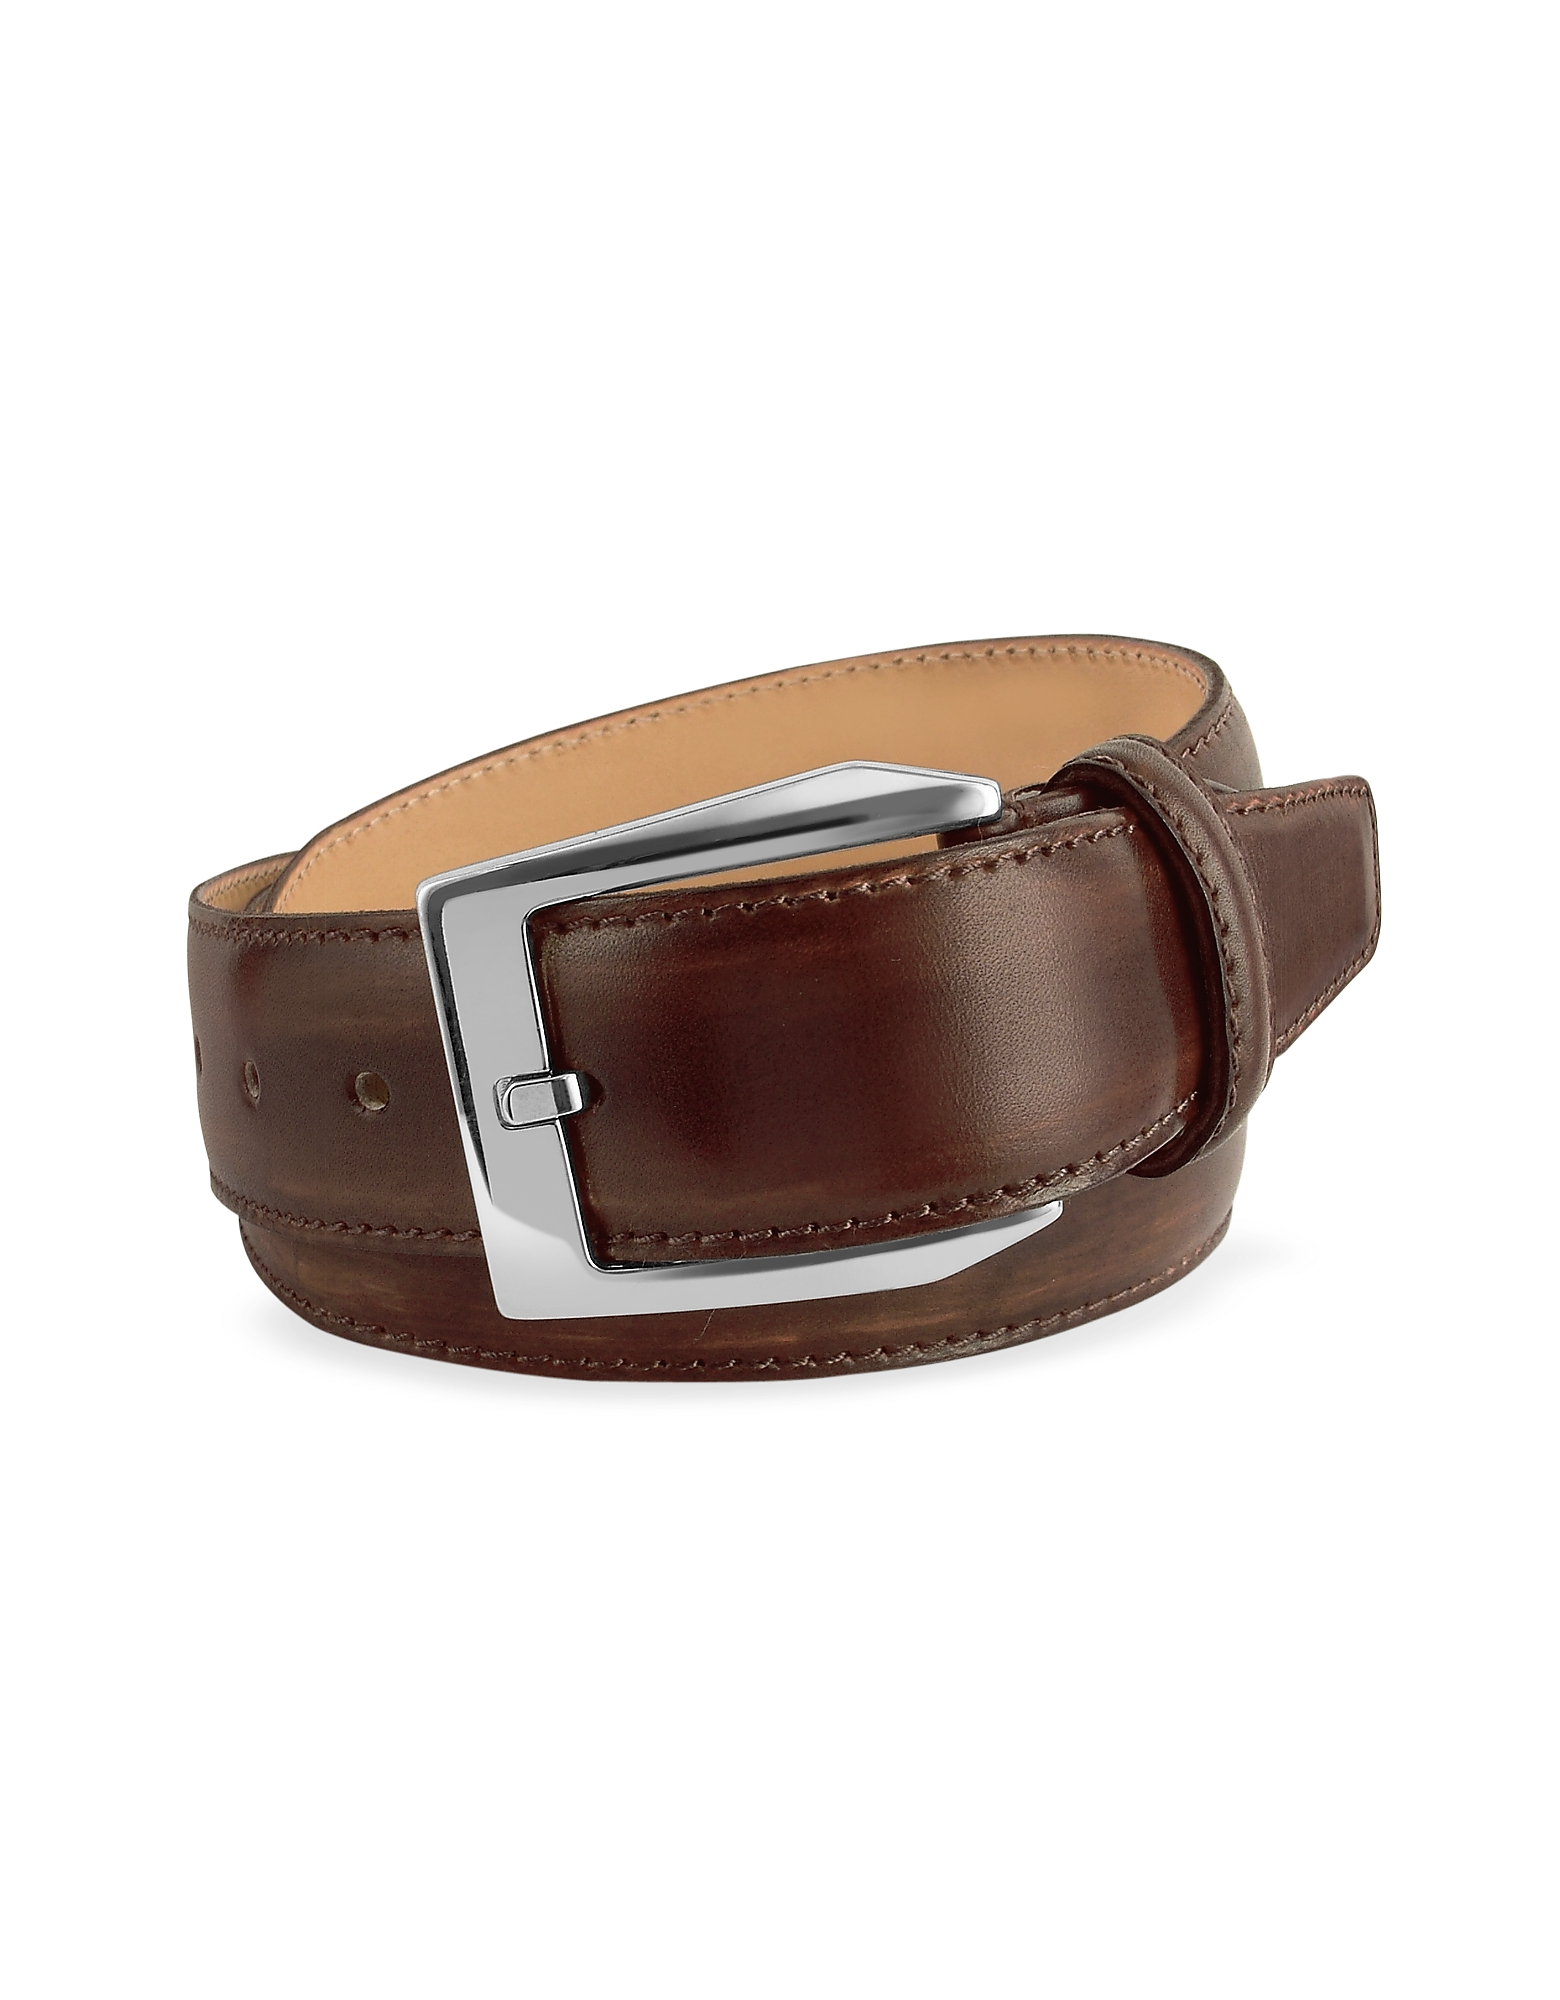 Image of Pakerson Designer Men's Belts, Men's Coffee Brown Hand Painted Italian Leather Belt